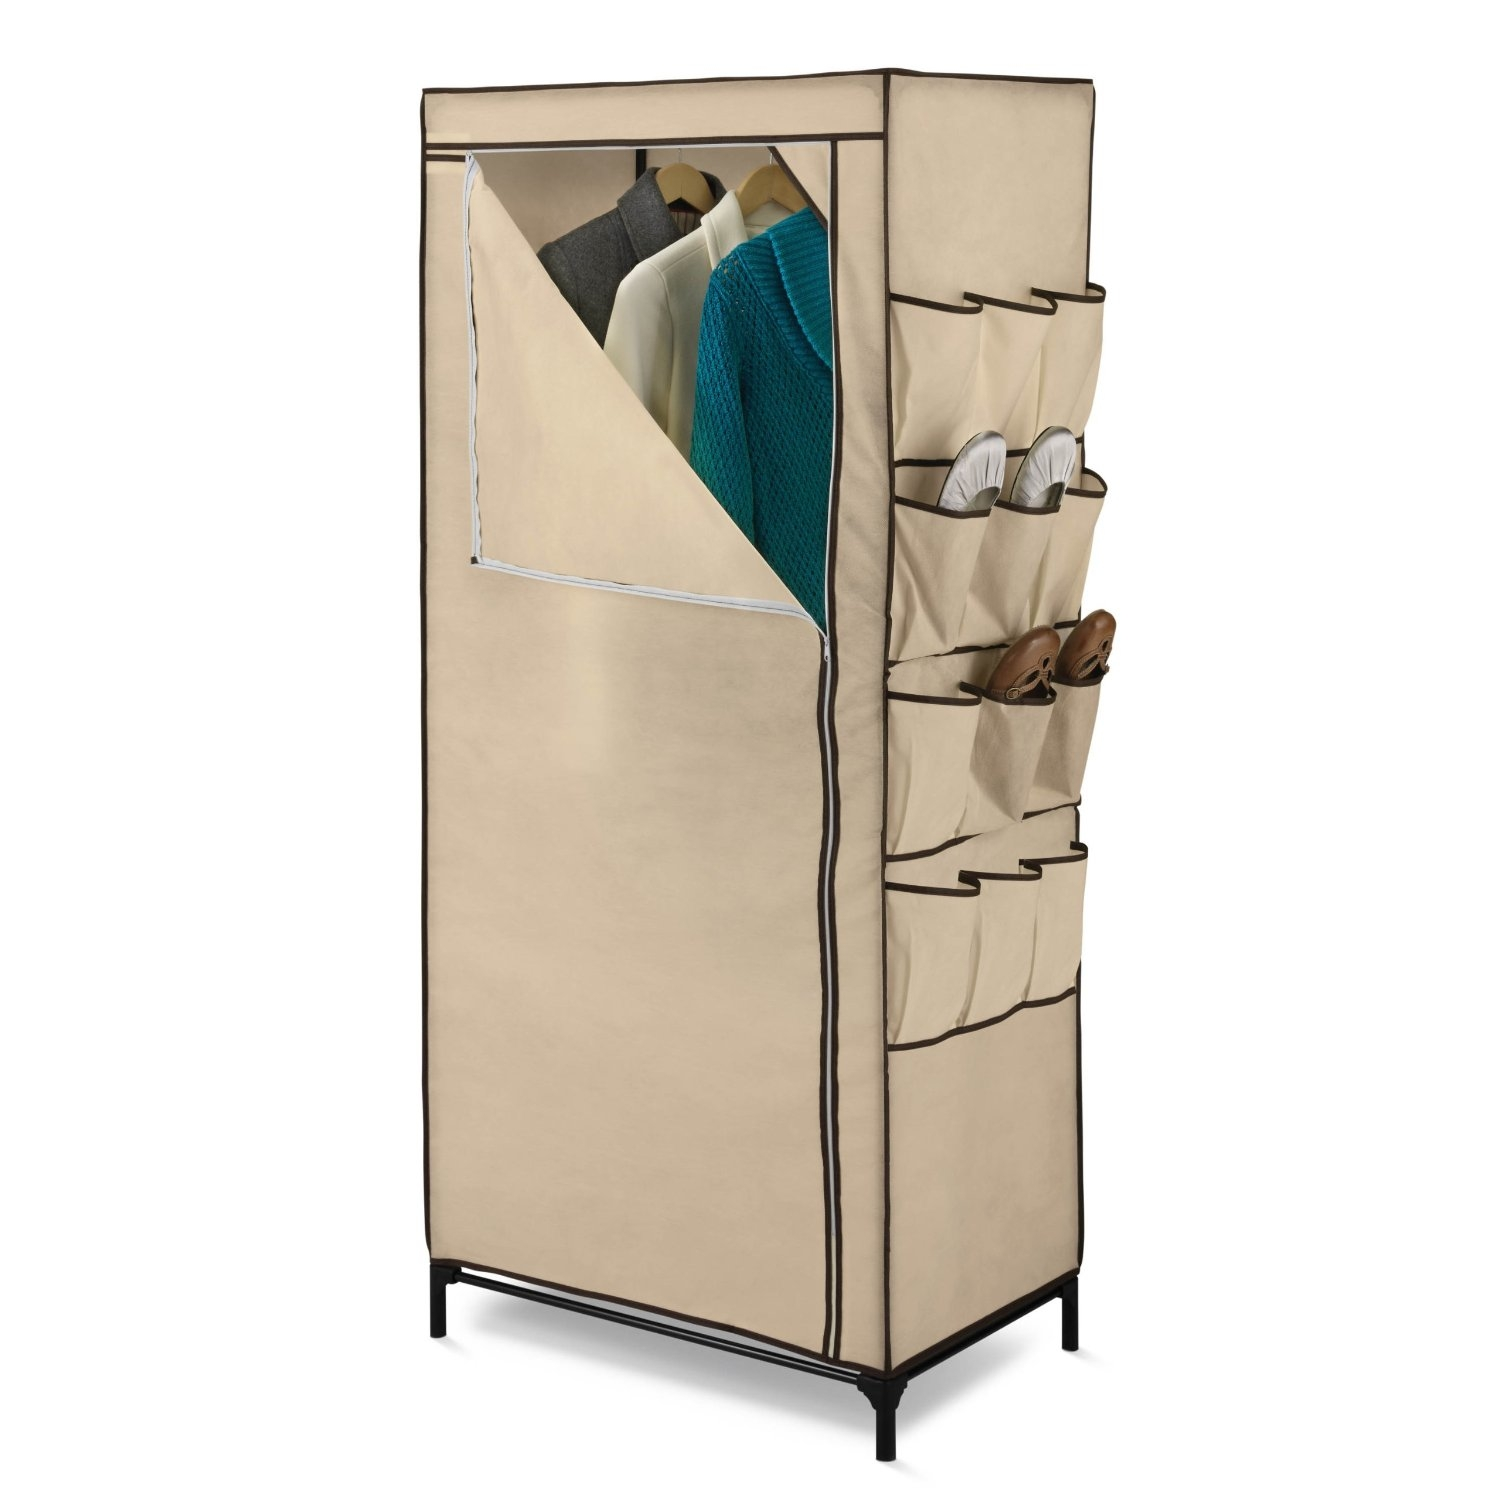 This Tan 27-inch Portable Storage Closet Wardrobe with Shoe Organizer comes equipped with nine large storage pockets on the side for accessories, shoes and other items. The non-woven fabric cover protects all of your garments on the inside. Store your garments with ease during the off-season or when not in use.